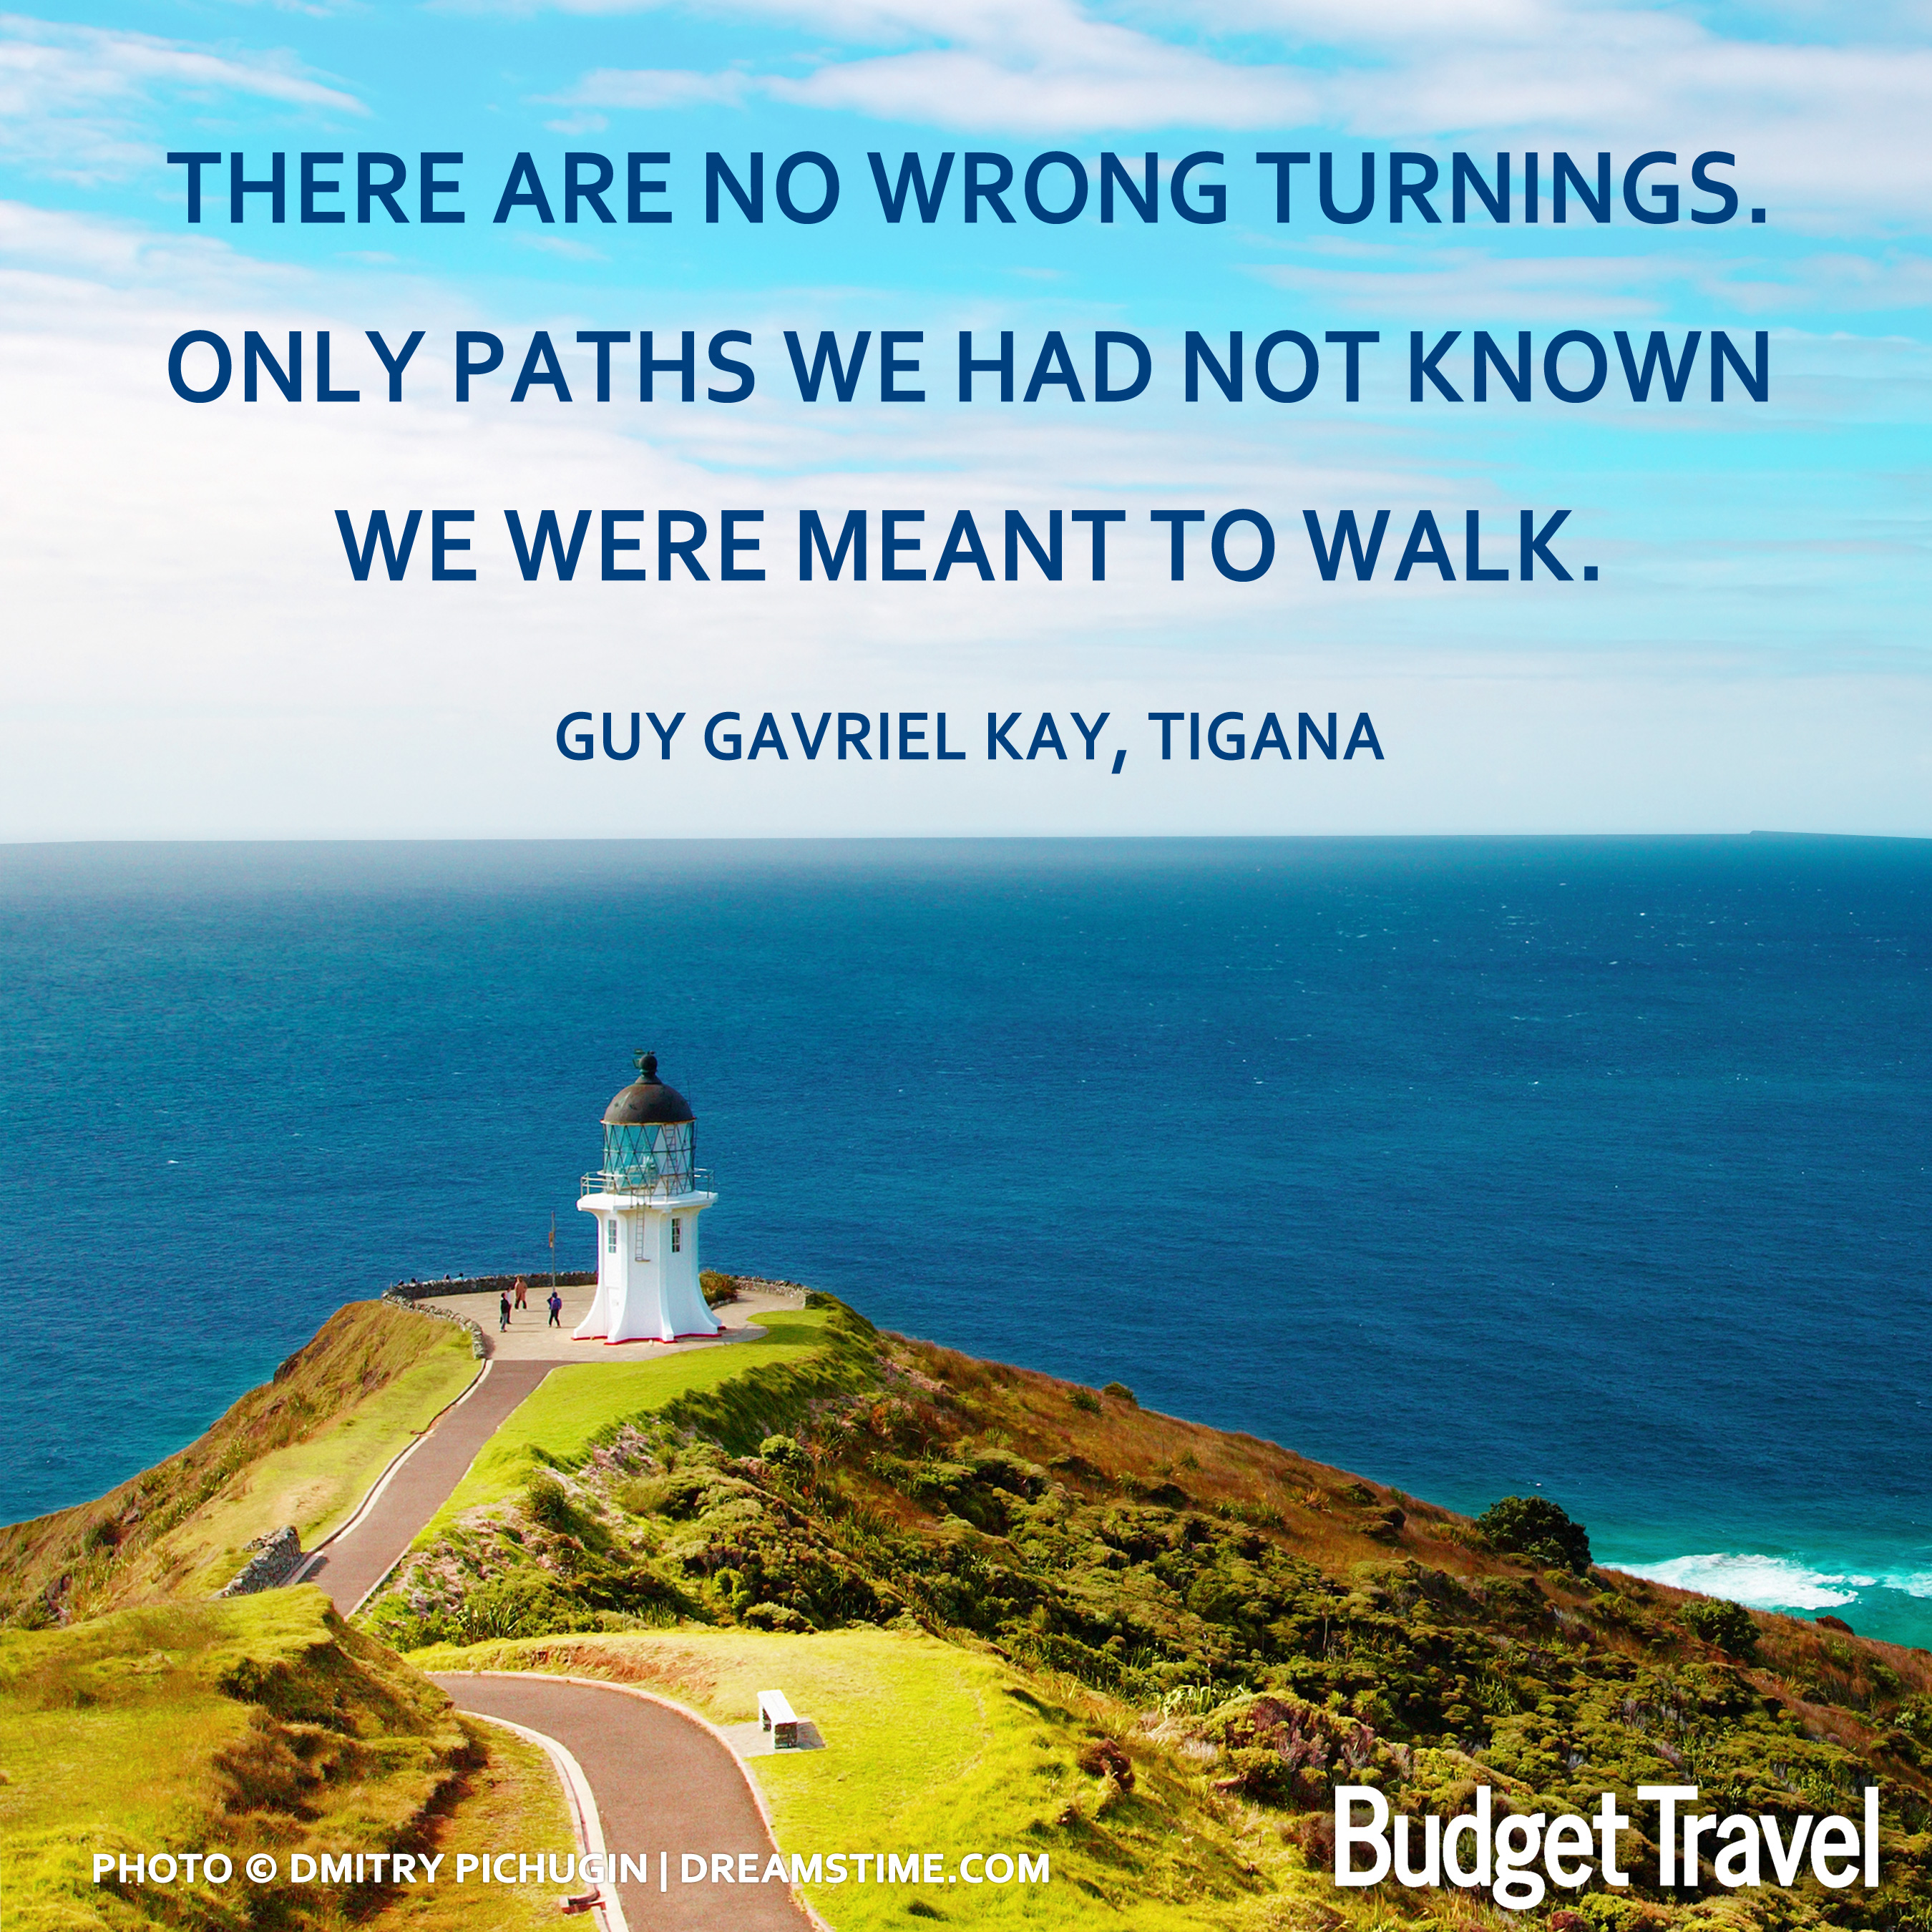 there-are-no-wrong-turnings-travel-quote-472015-19105_original